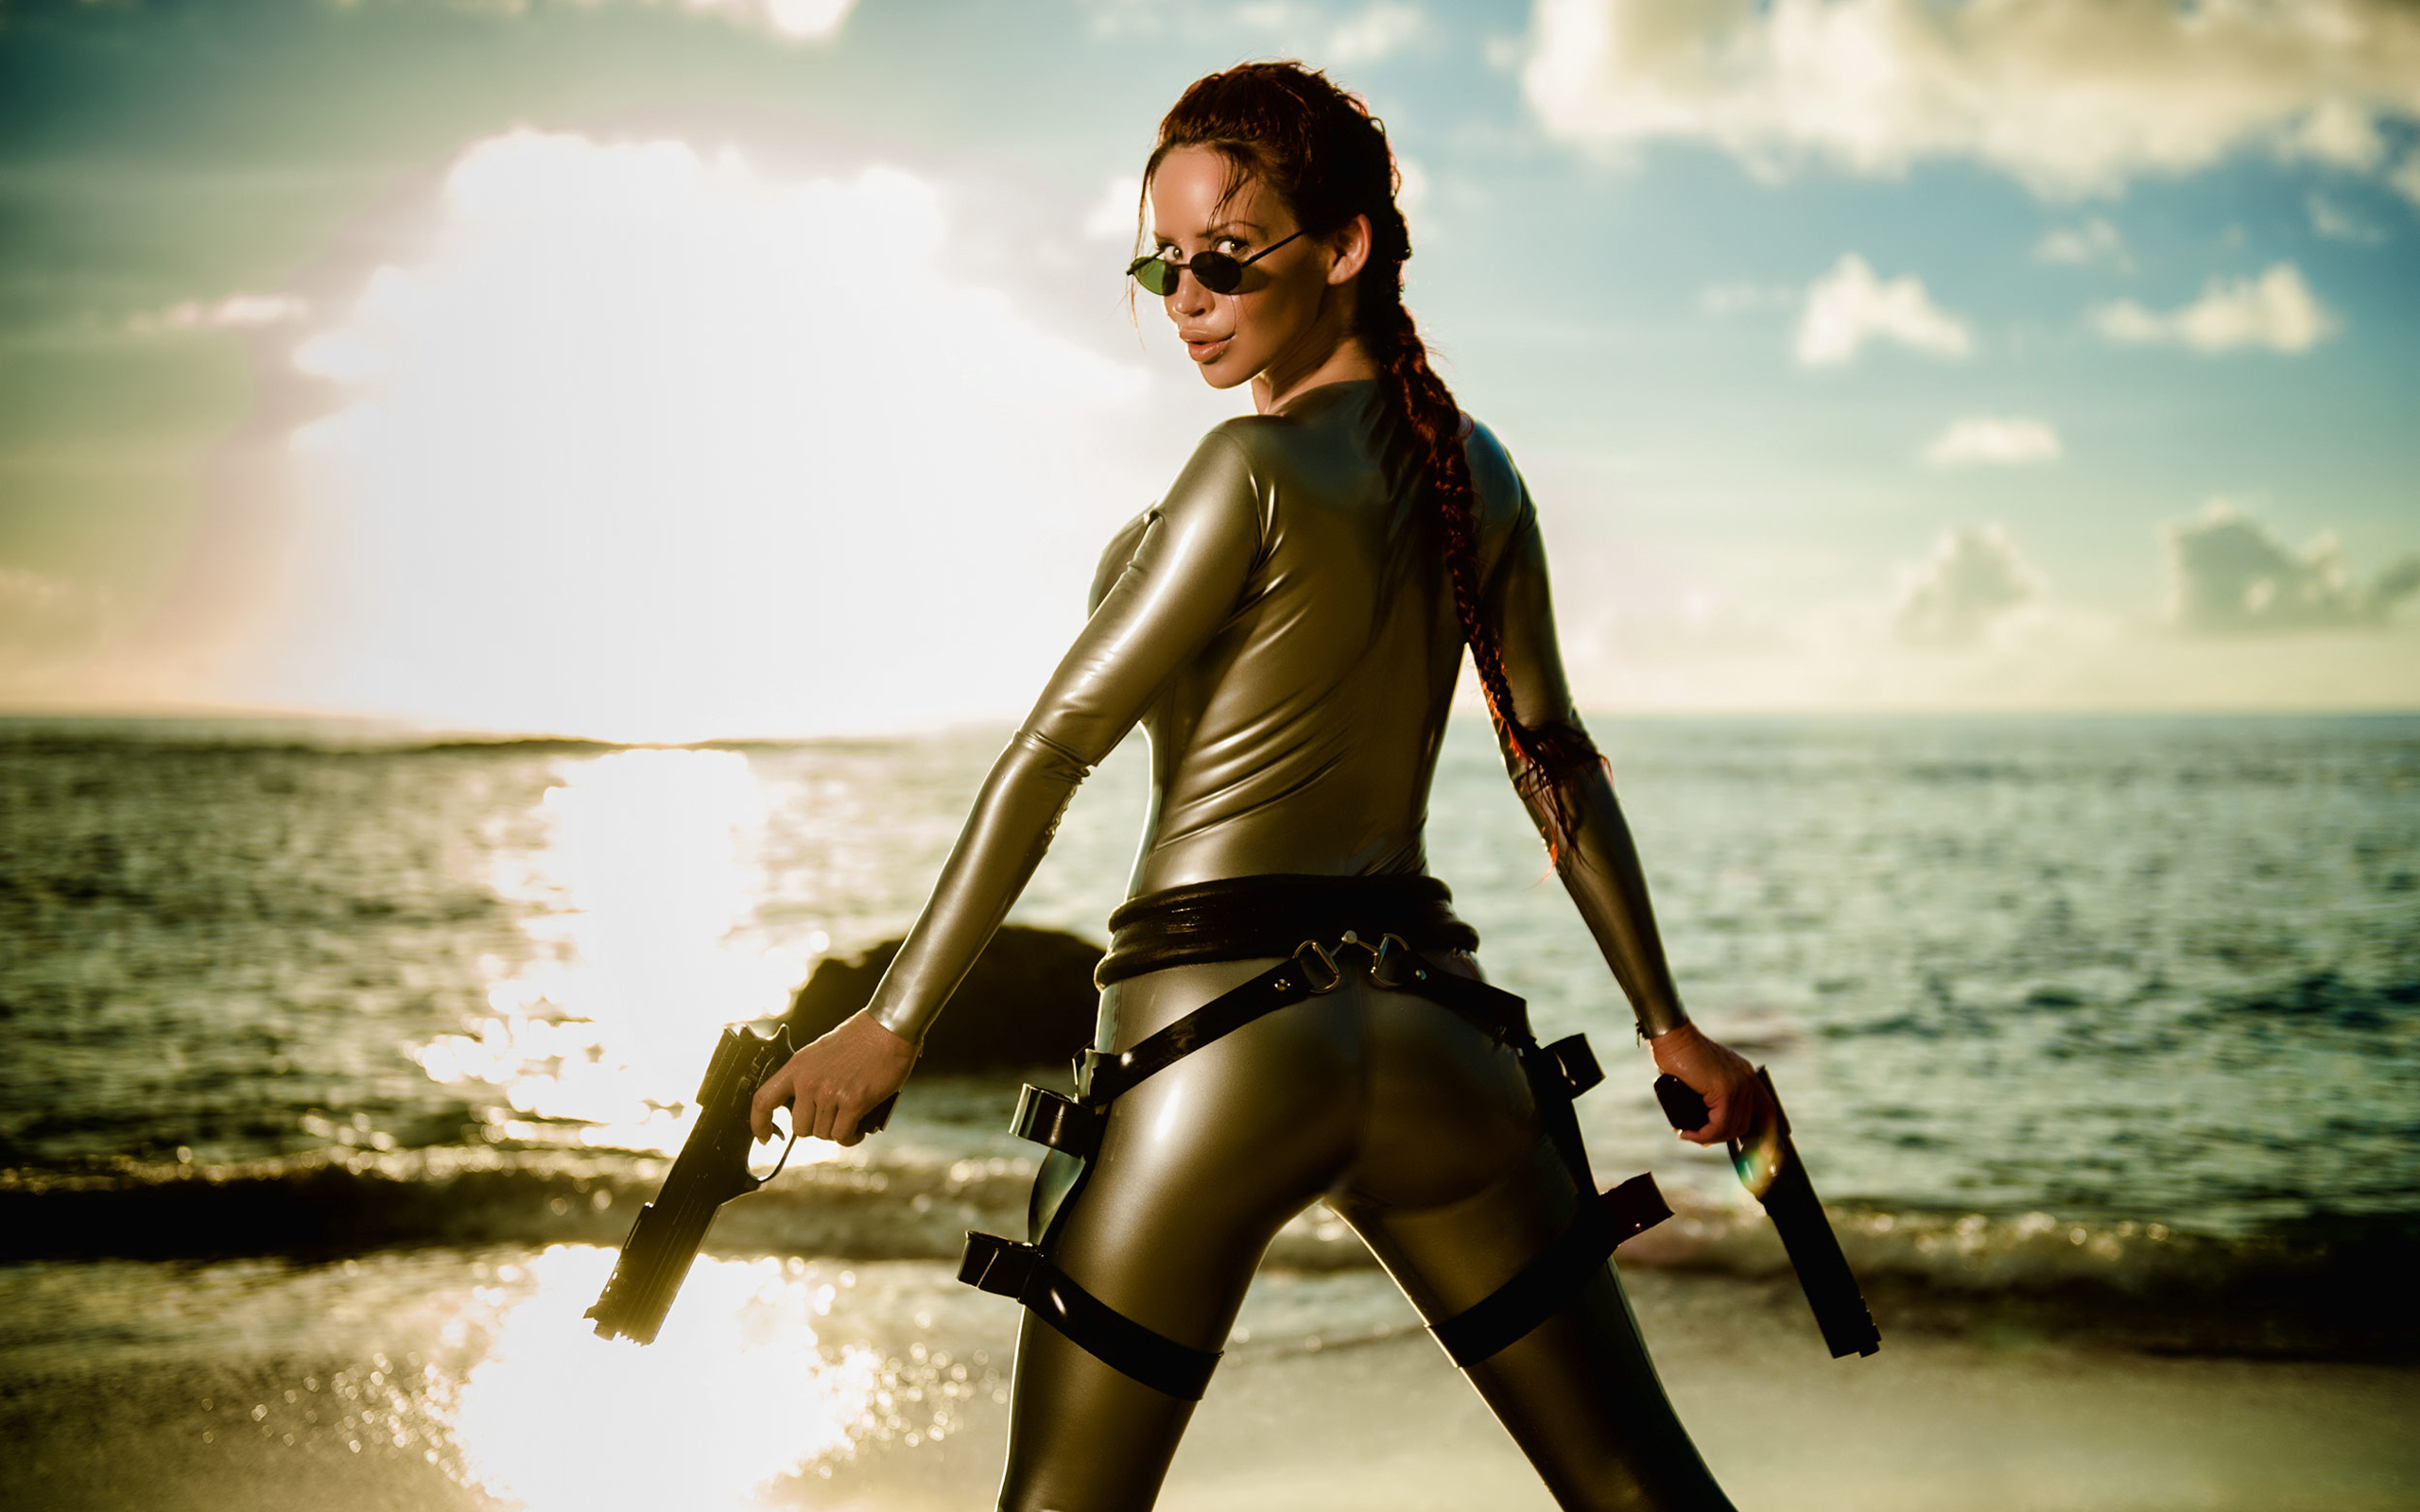 Fetish lara croft